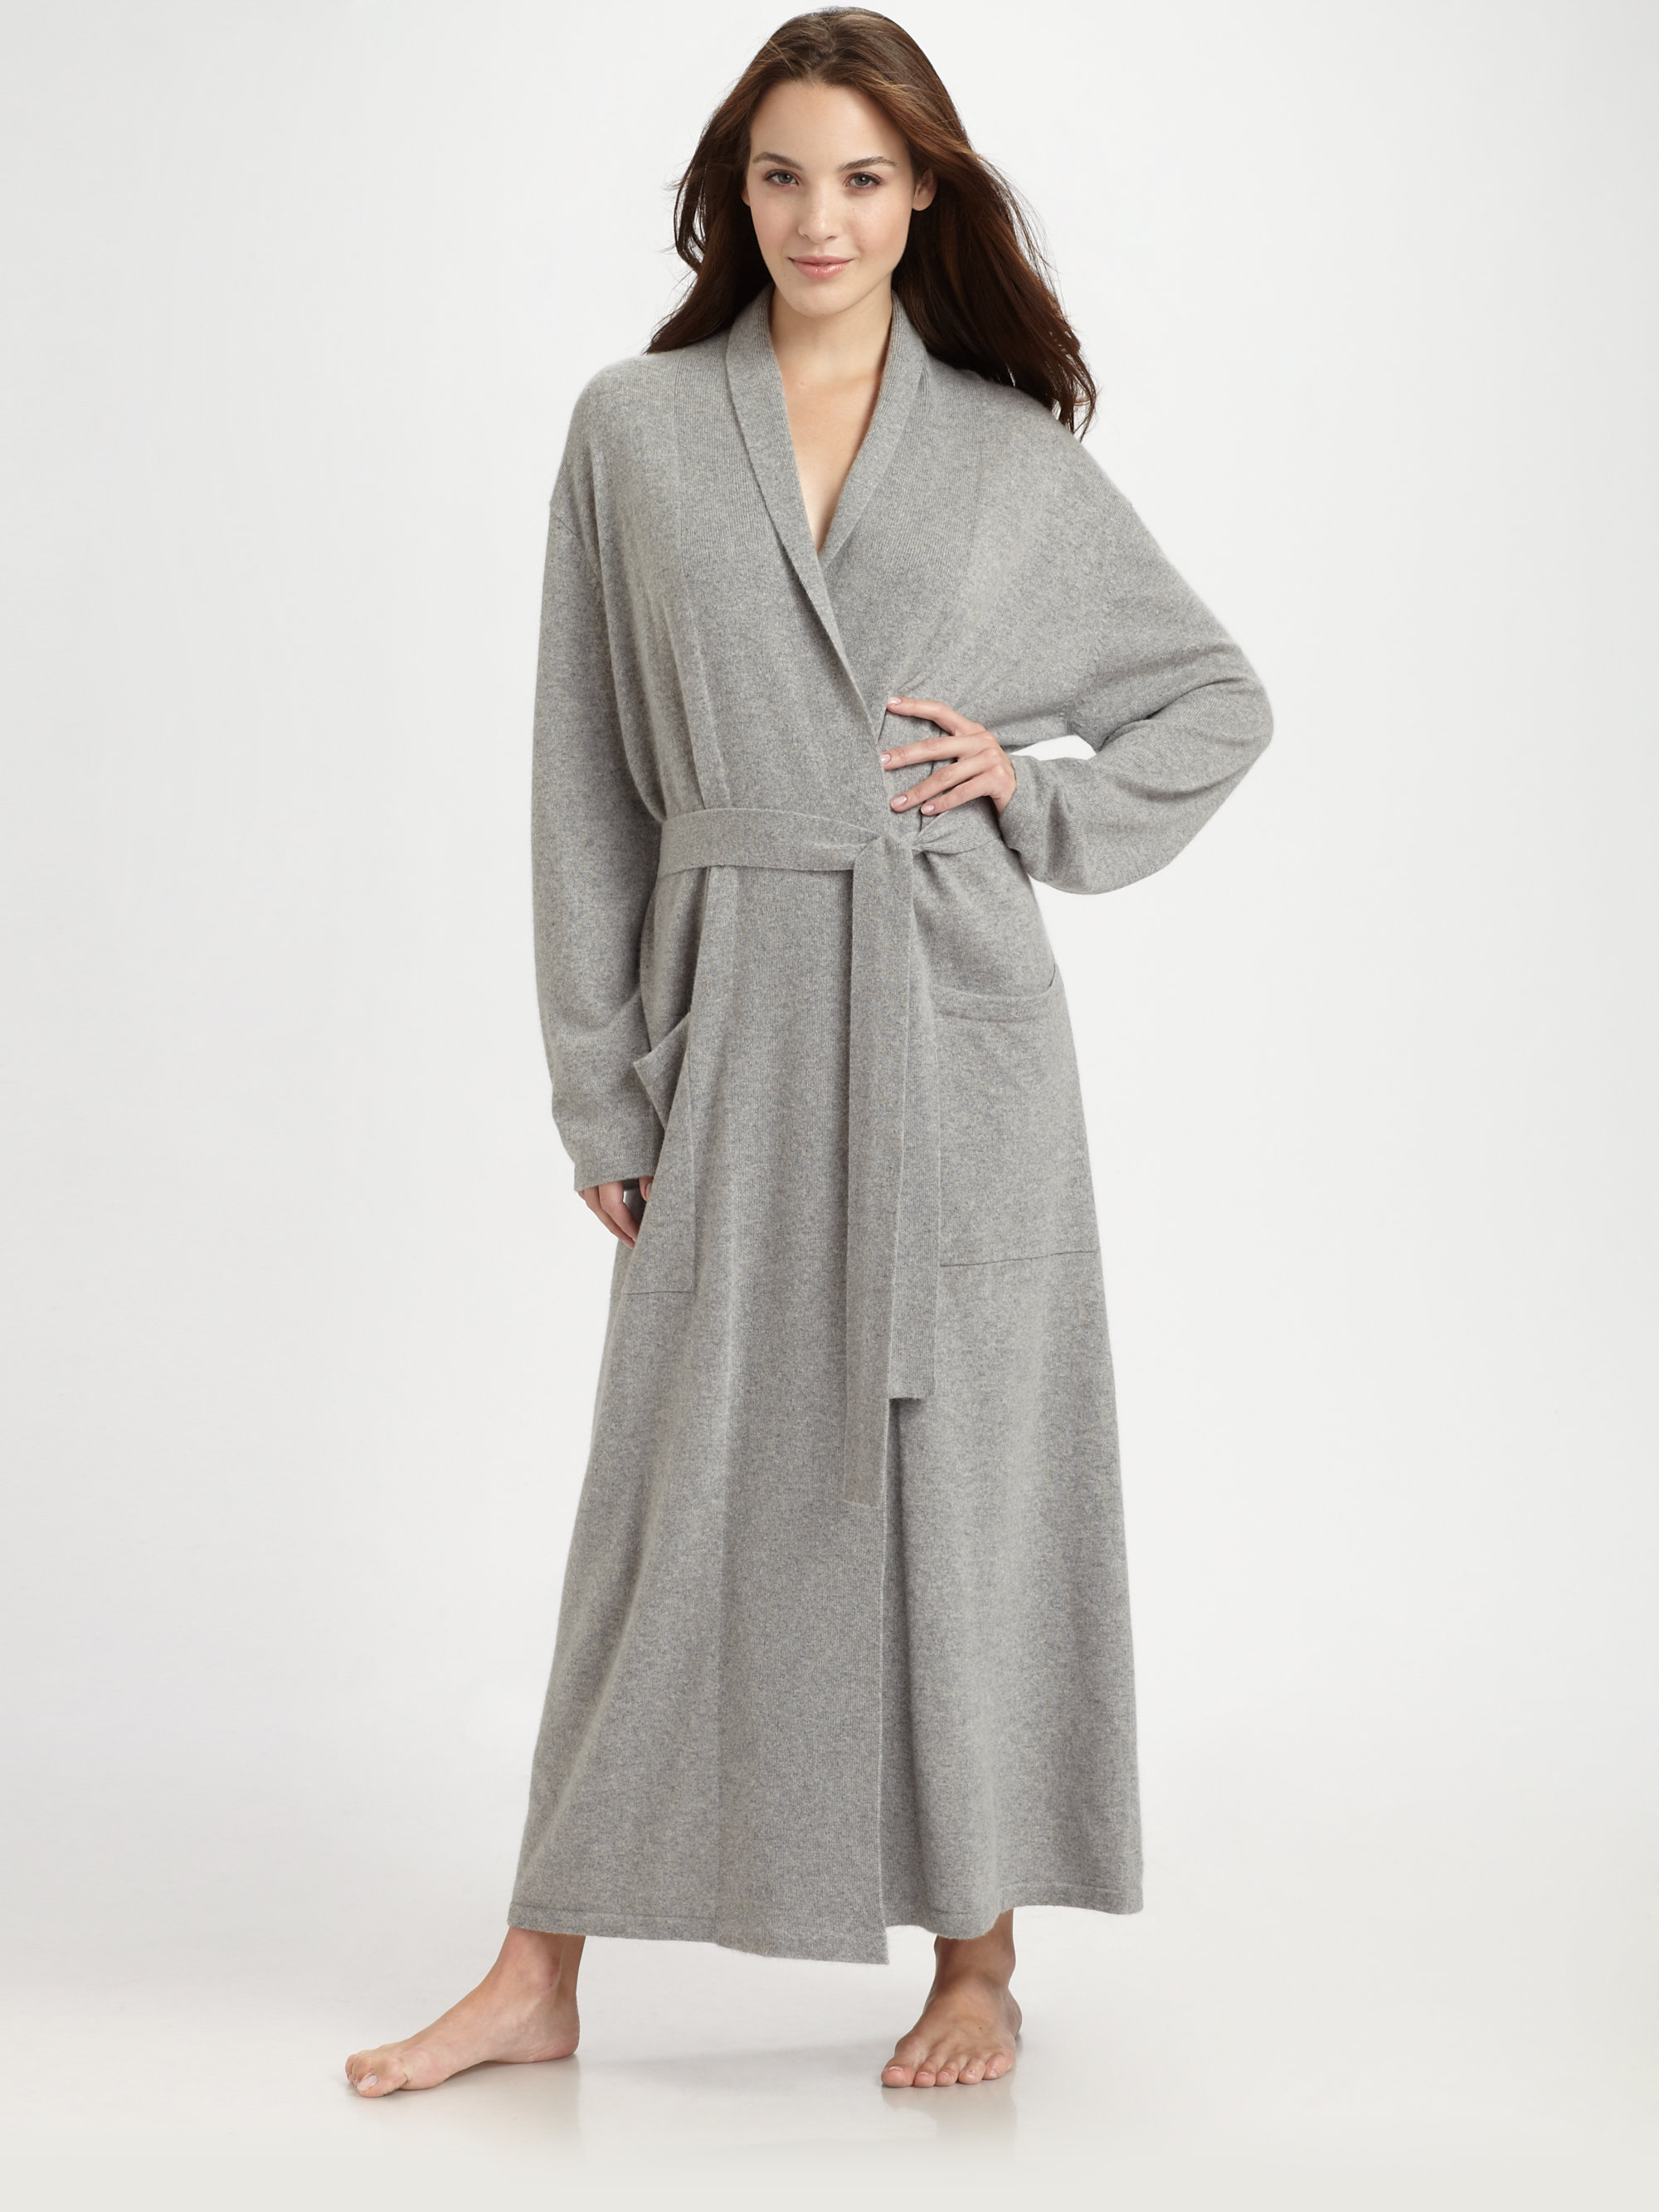 Lyst saks fifth avenue long basic cashmere robe in gray for Saks 5th avenue robes de mariage